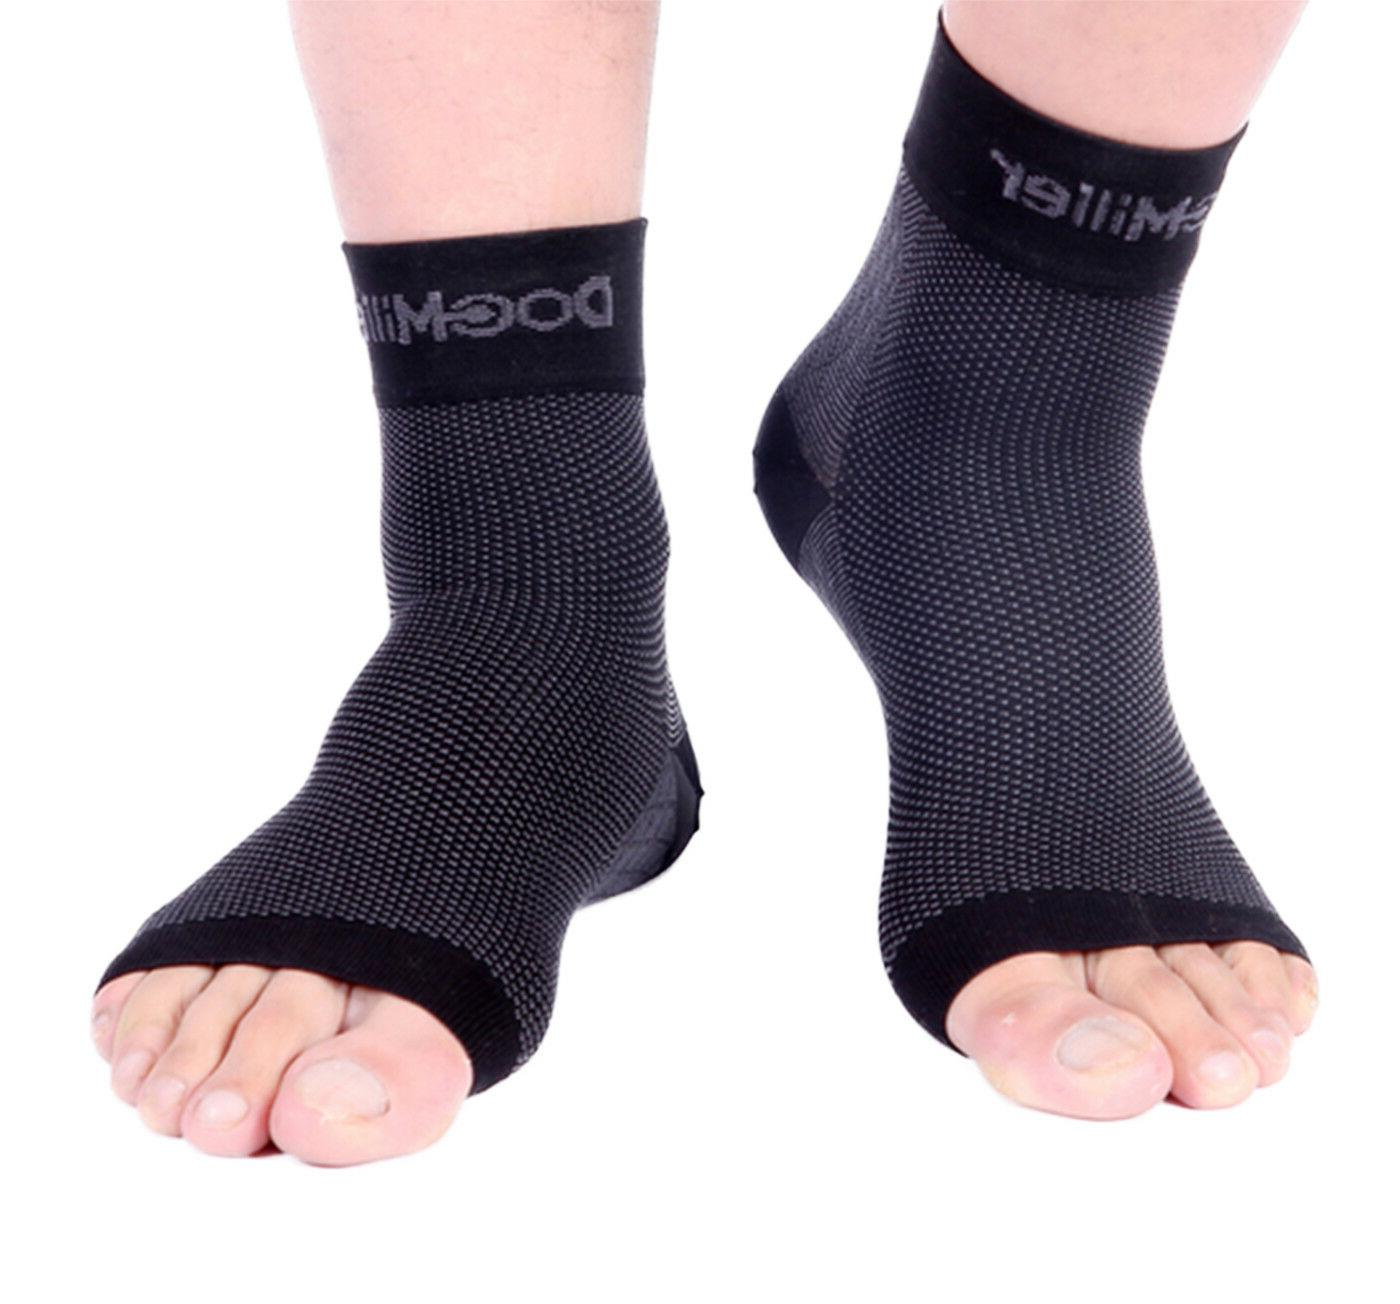 plantar fasciitis arch support compression ankle brace